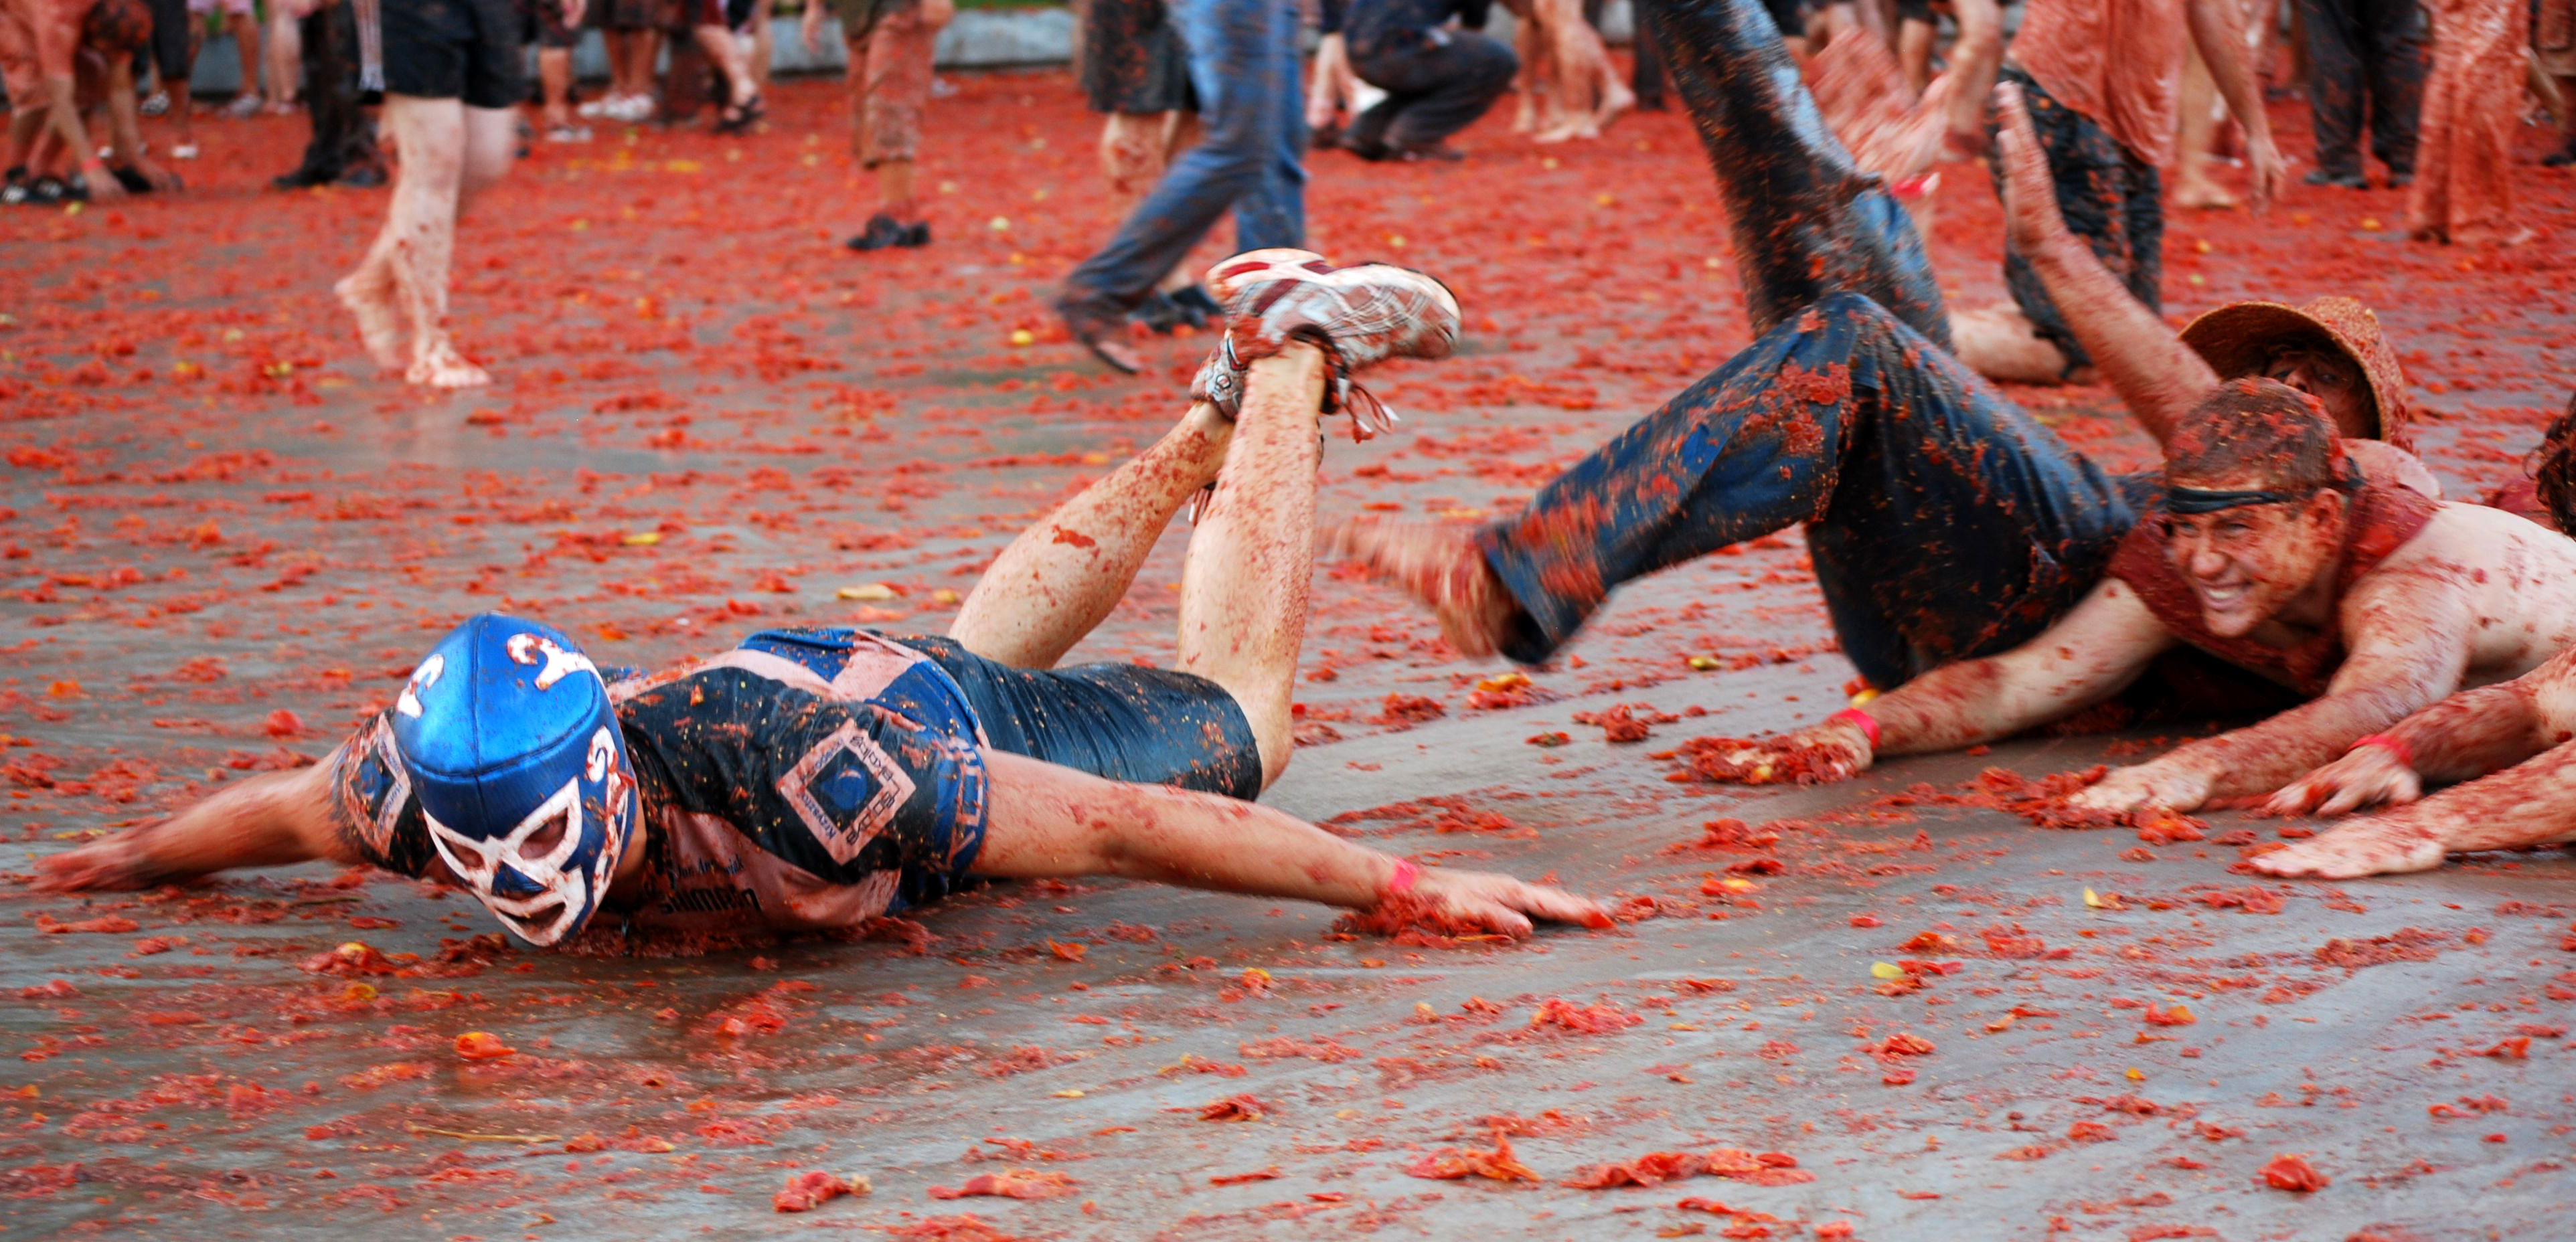 La Tomatina is an annual event in the Spanish town of Buñol. Photo courtesy Reno T.